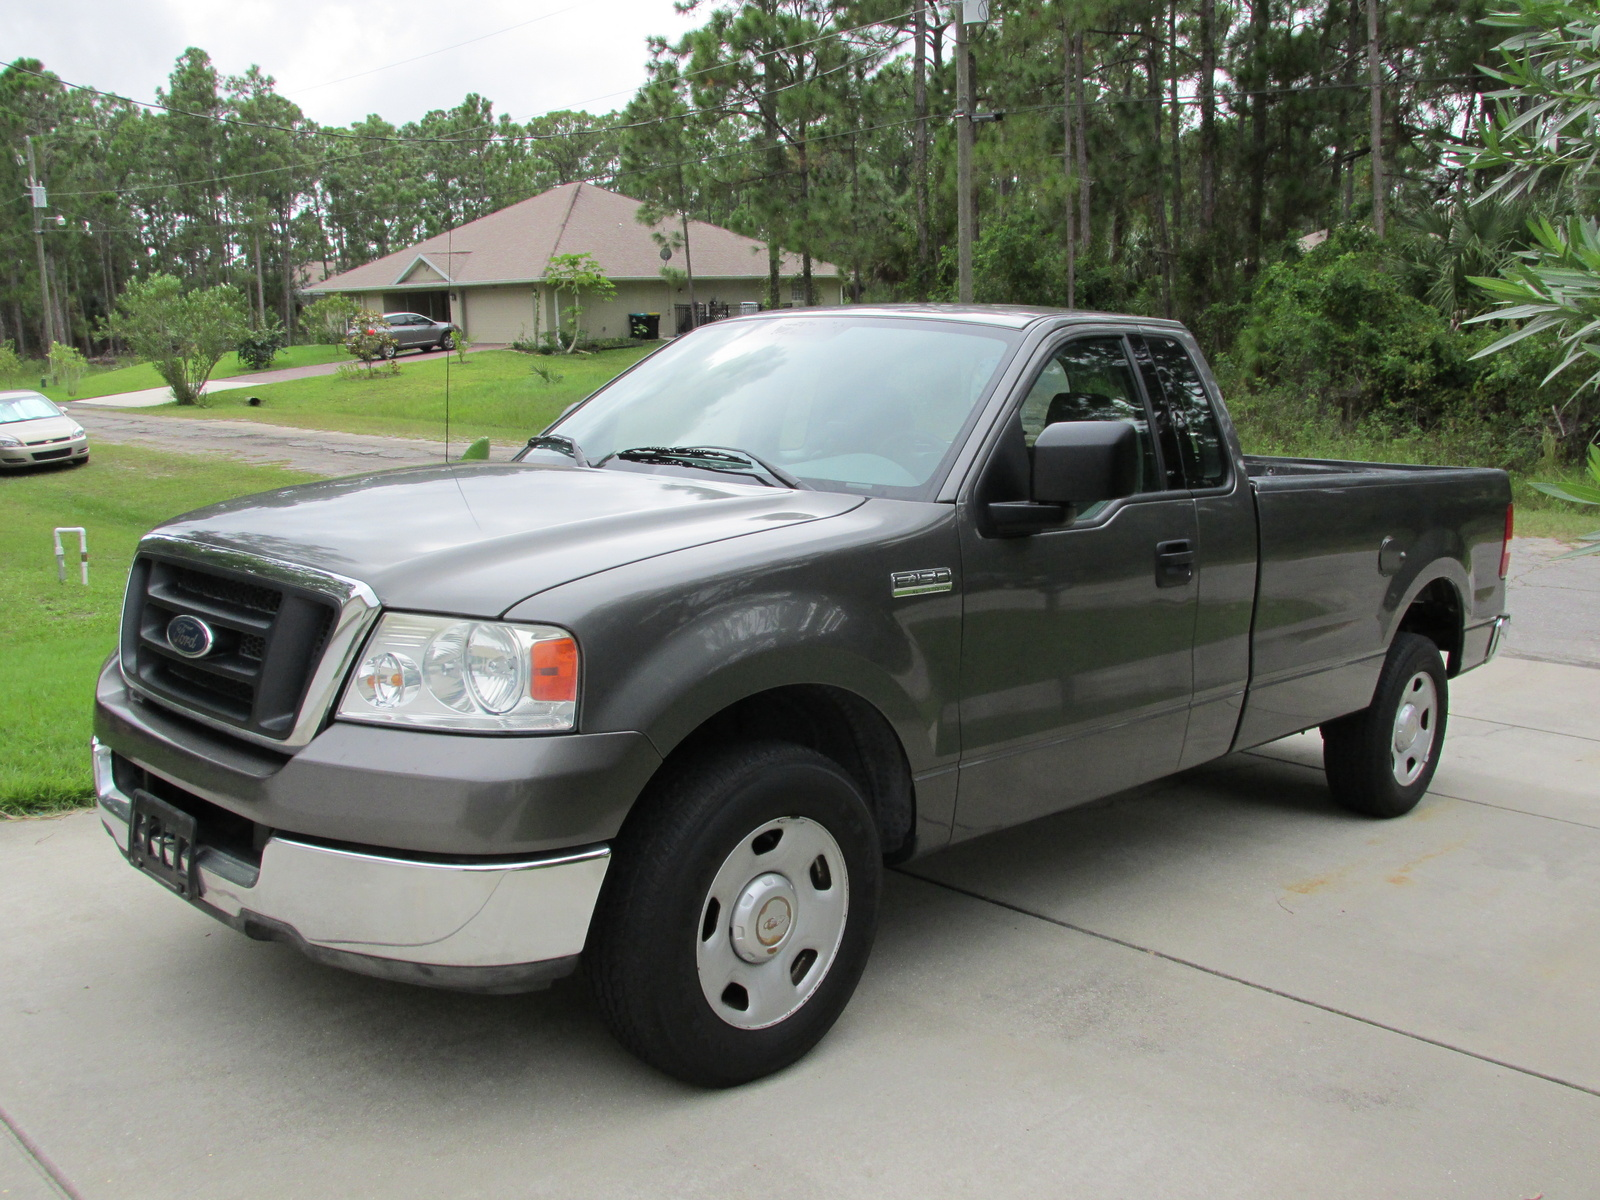 2004 Ford F-150 - Pictures